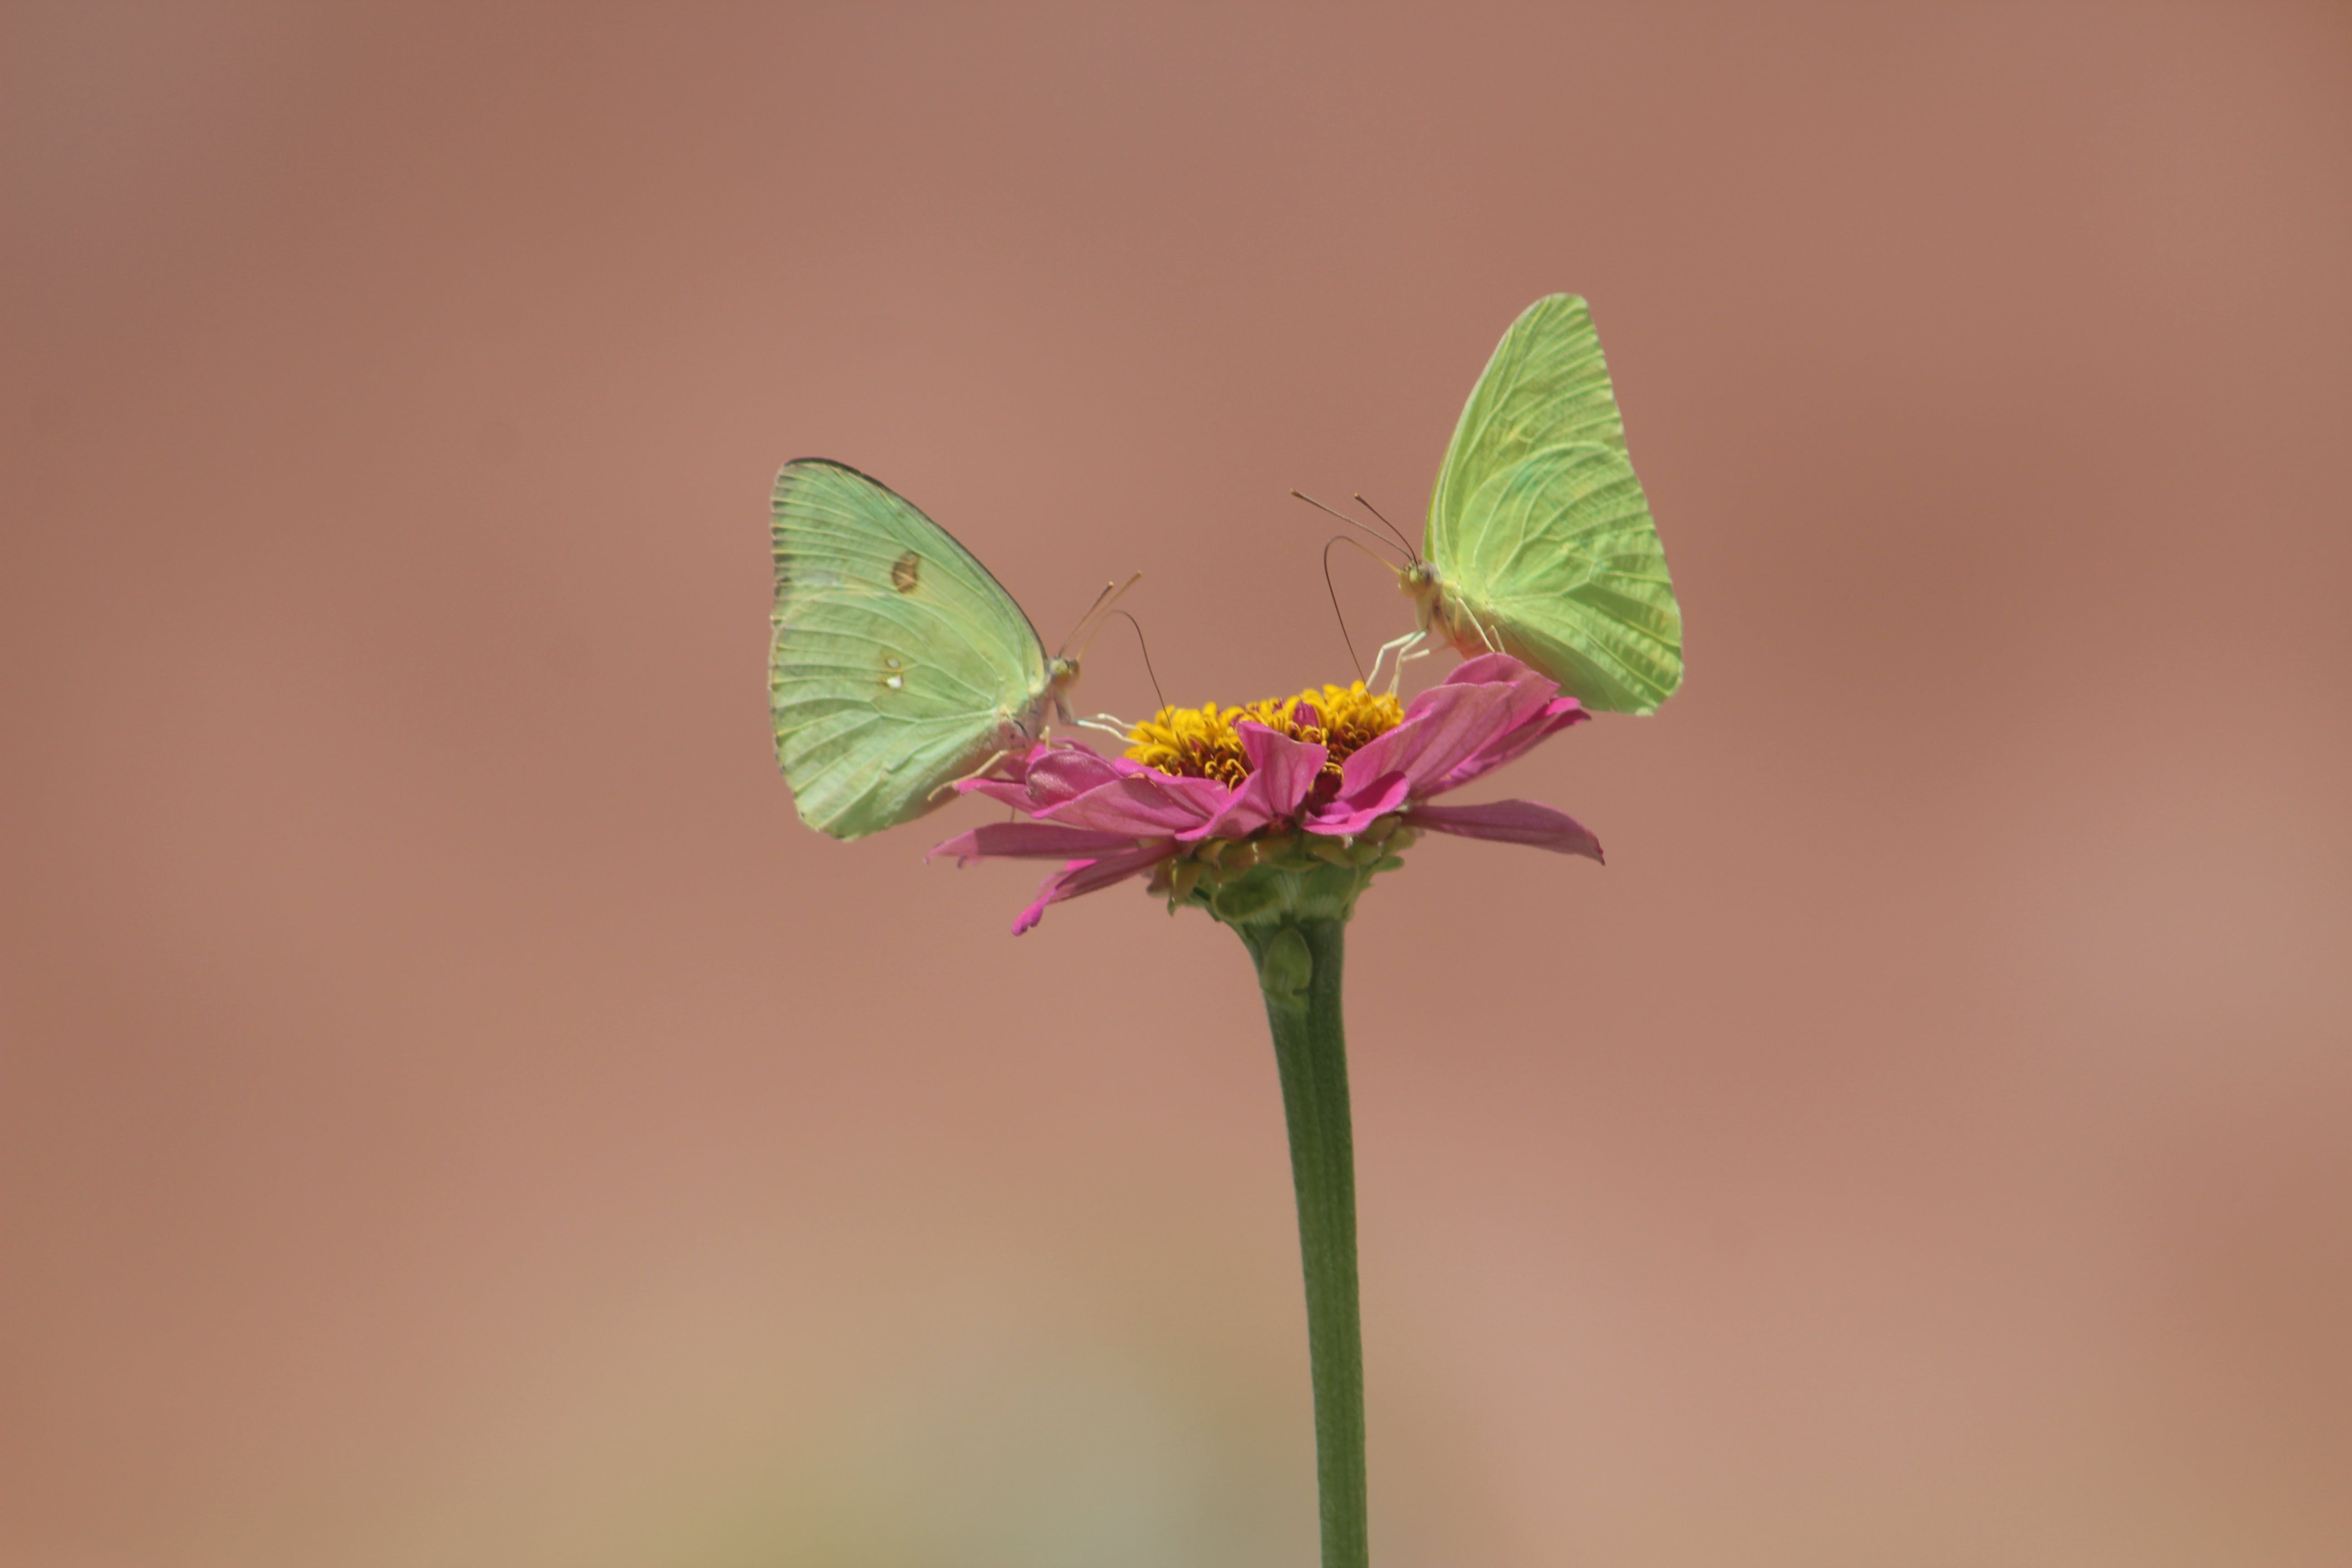 Free stock photo of butterflies, butterfly on a flower